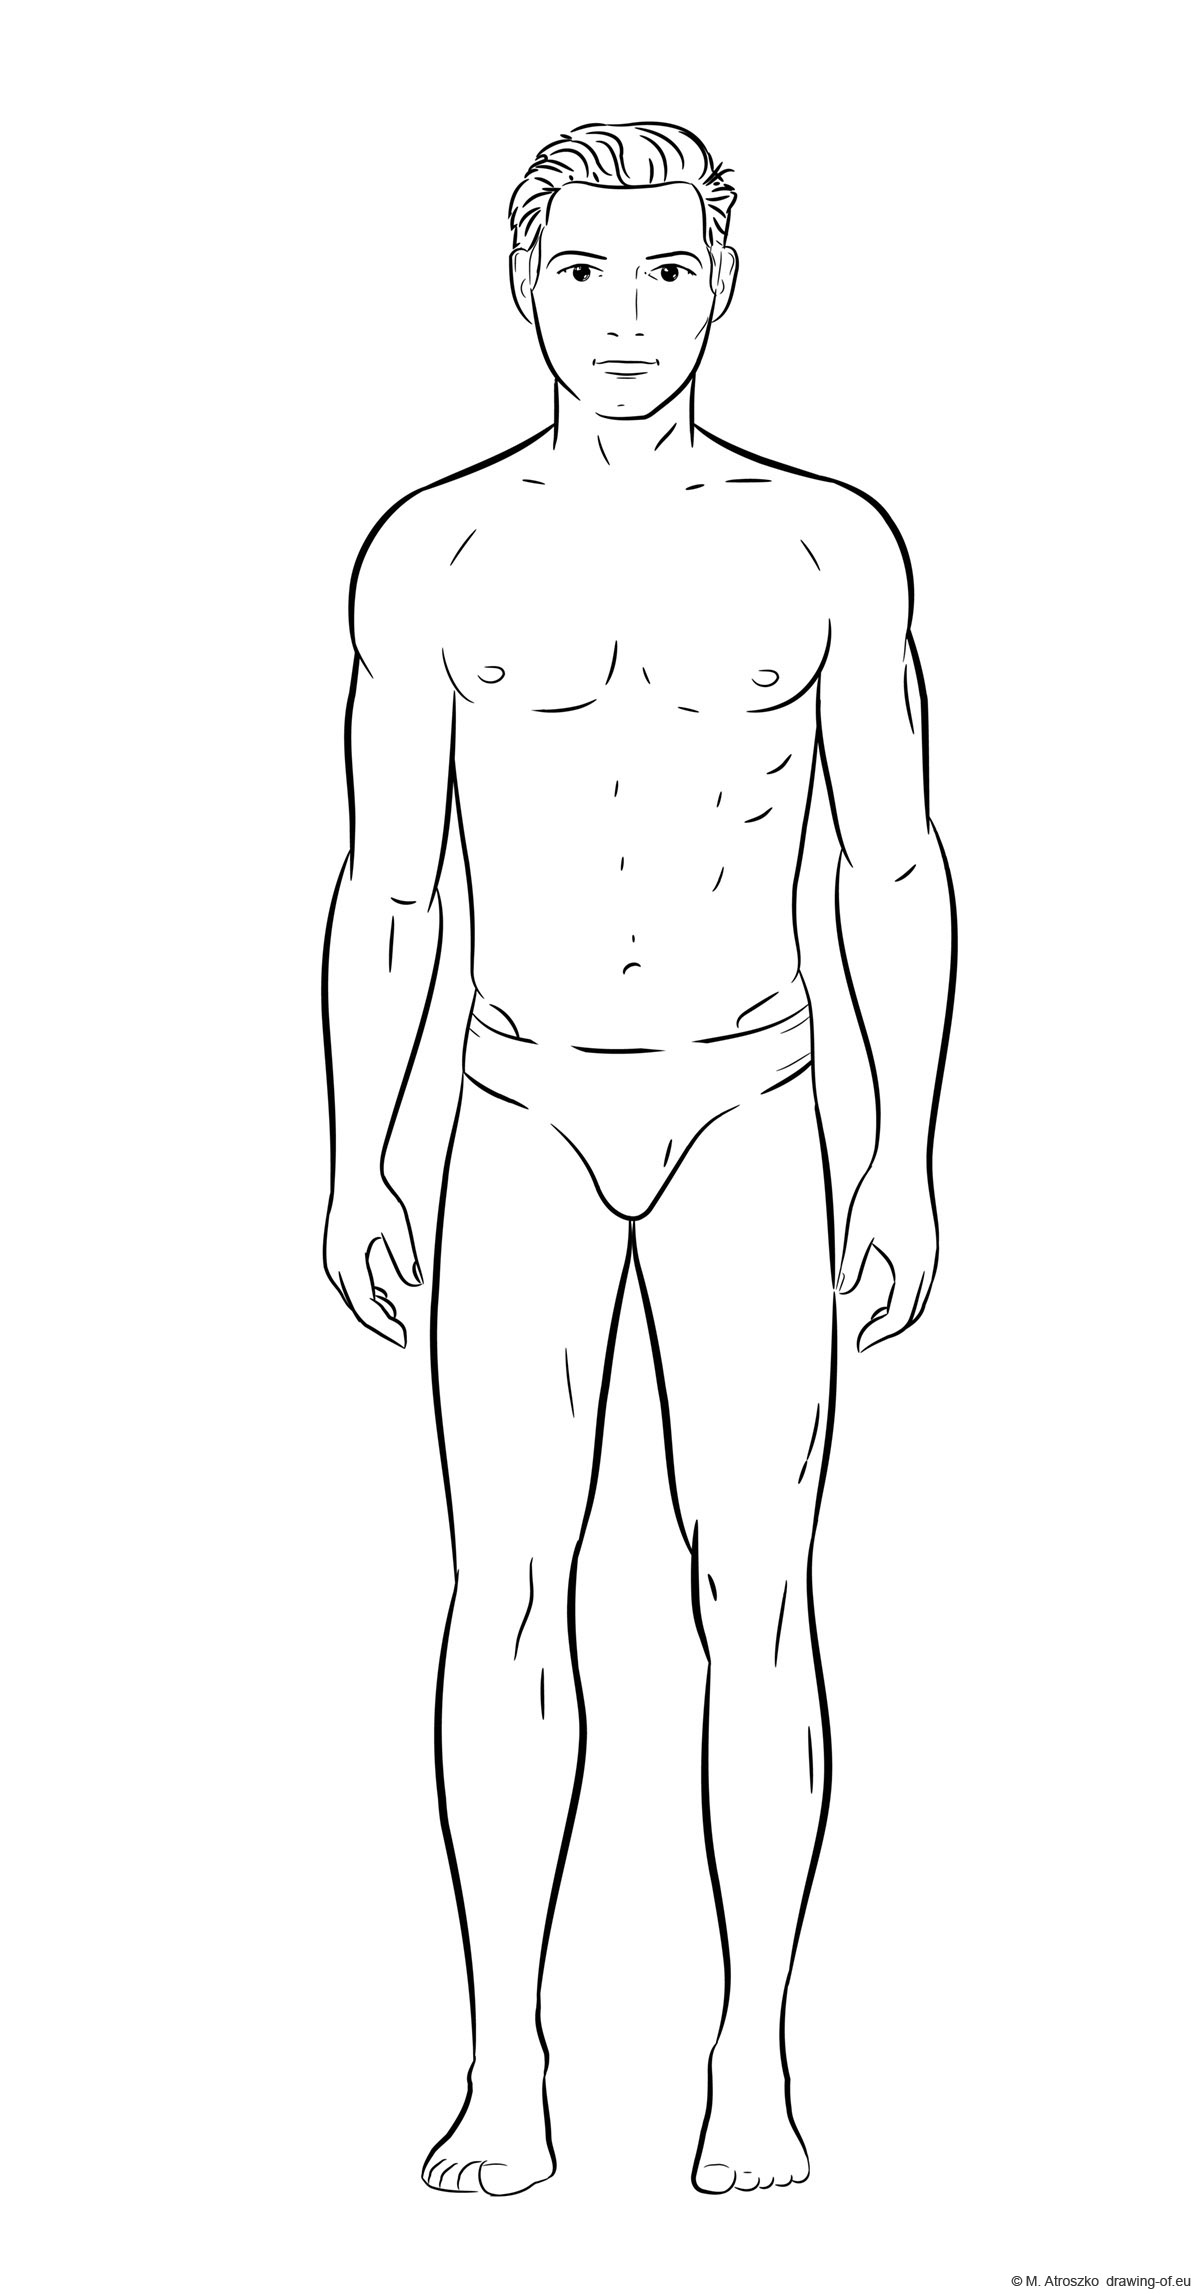 Drawing of a man - body